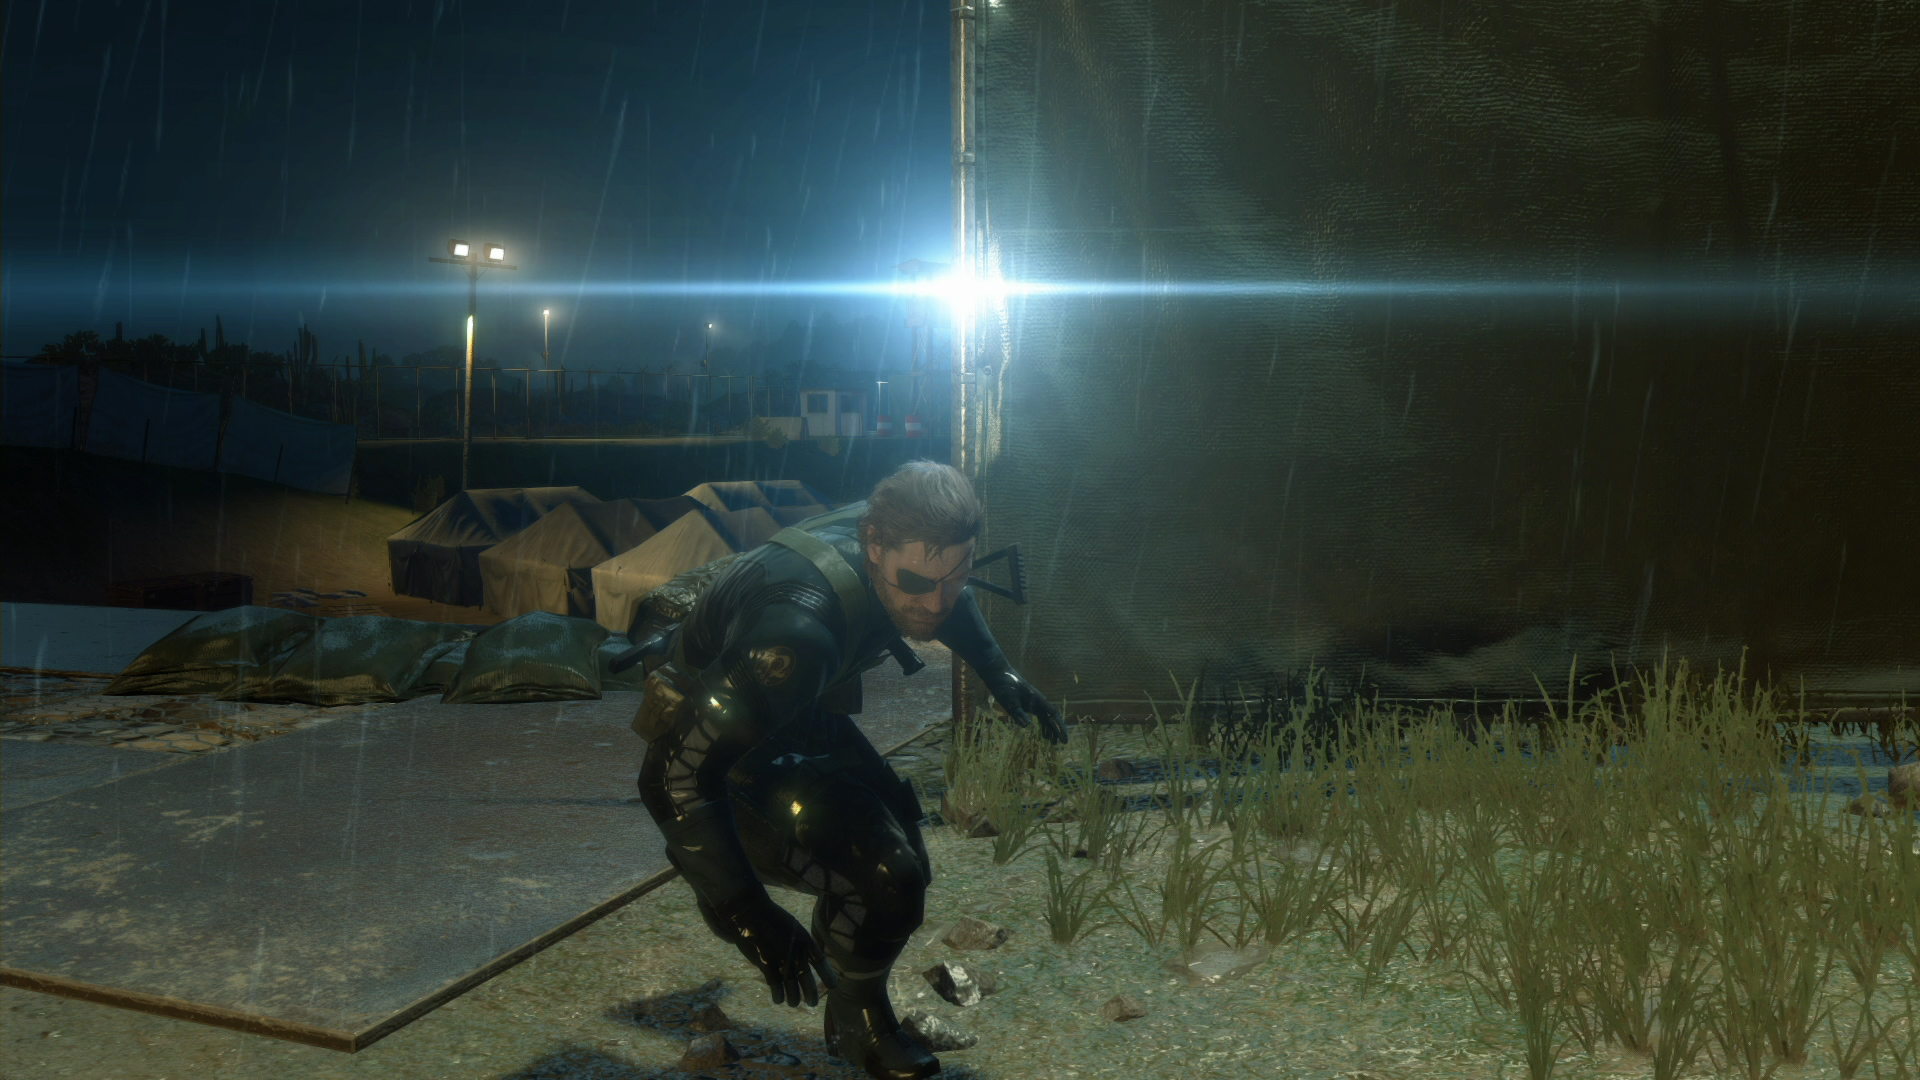 Metal Gear Solid 5: Ground Zeroes Launching In Spring 2014 #29592